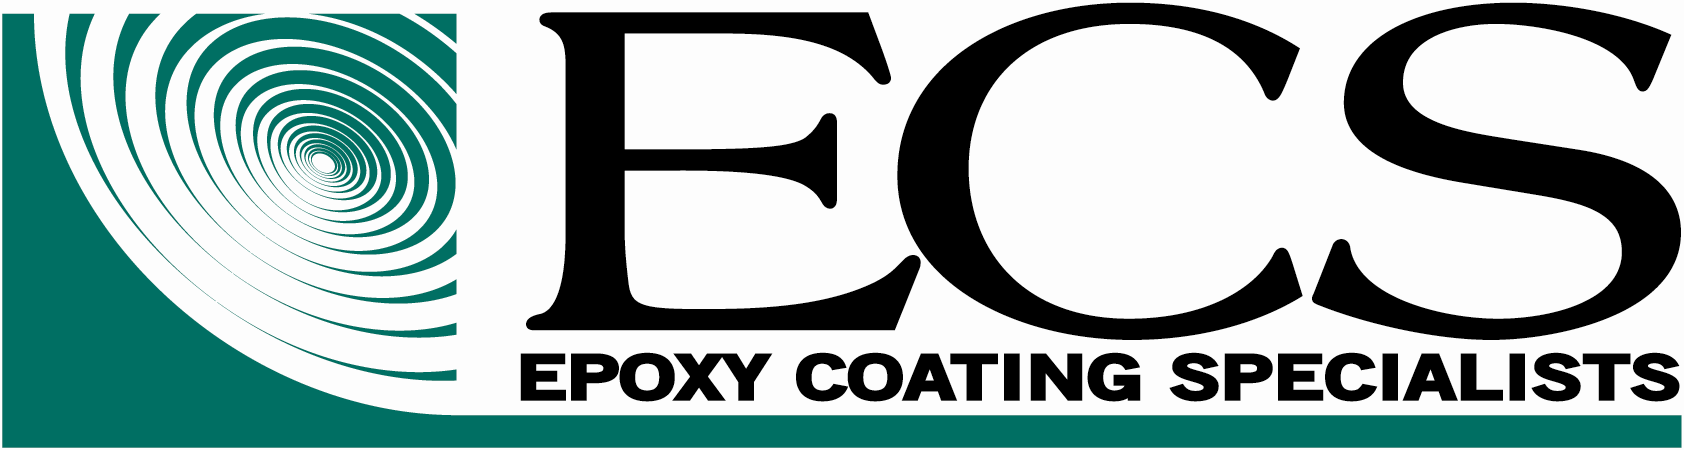 Epoxy Coating Specialists